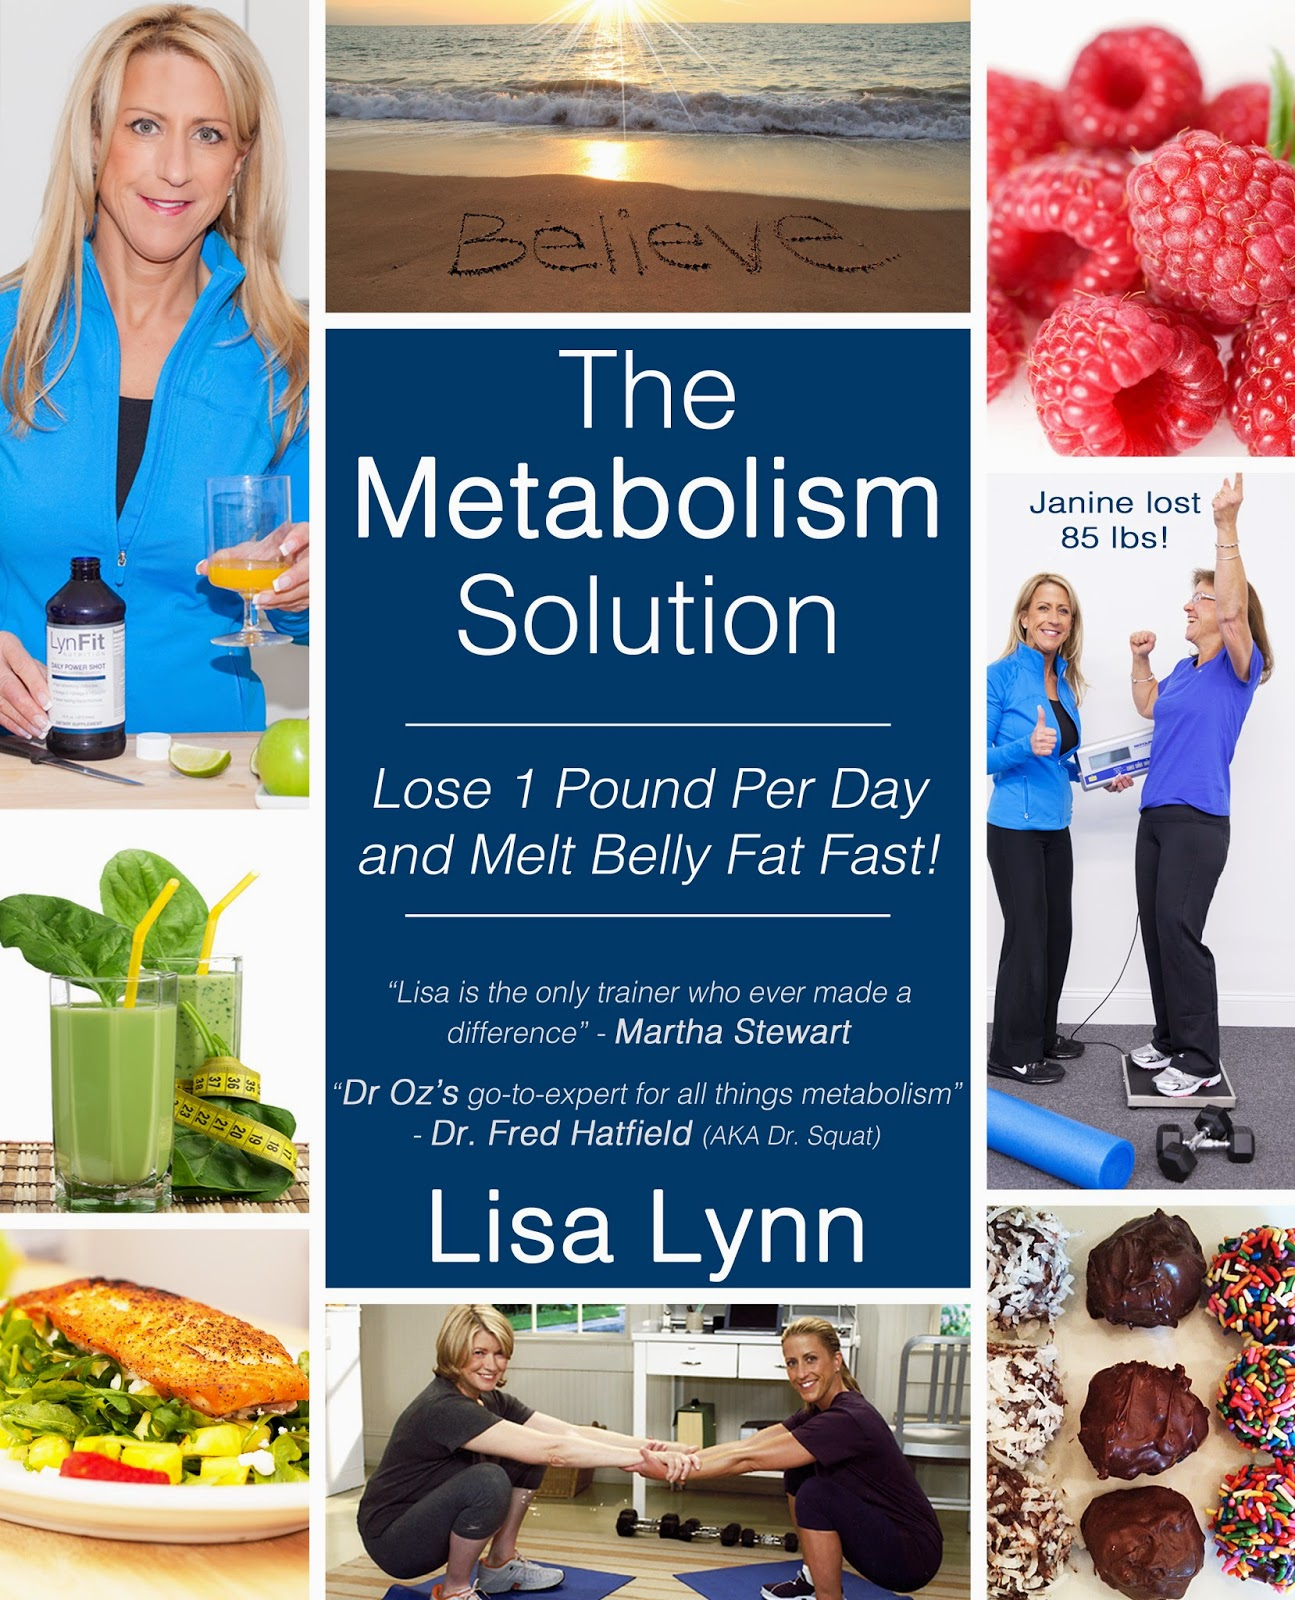 Lifeoxylean weight loss accelerator image 1